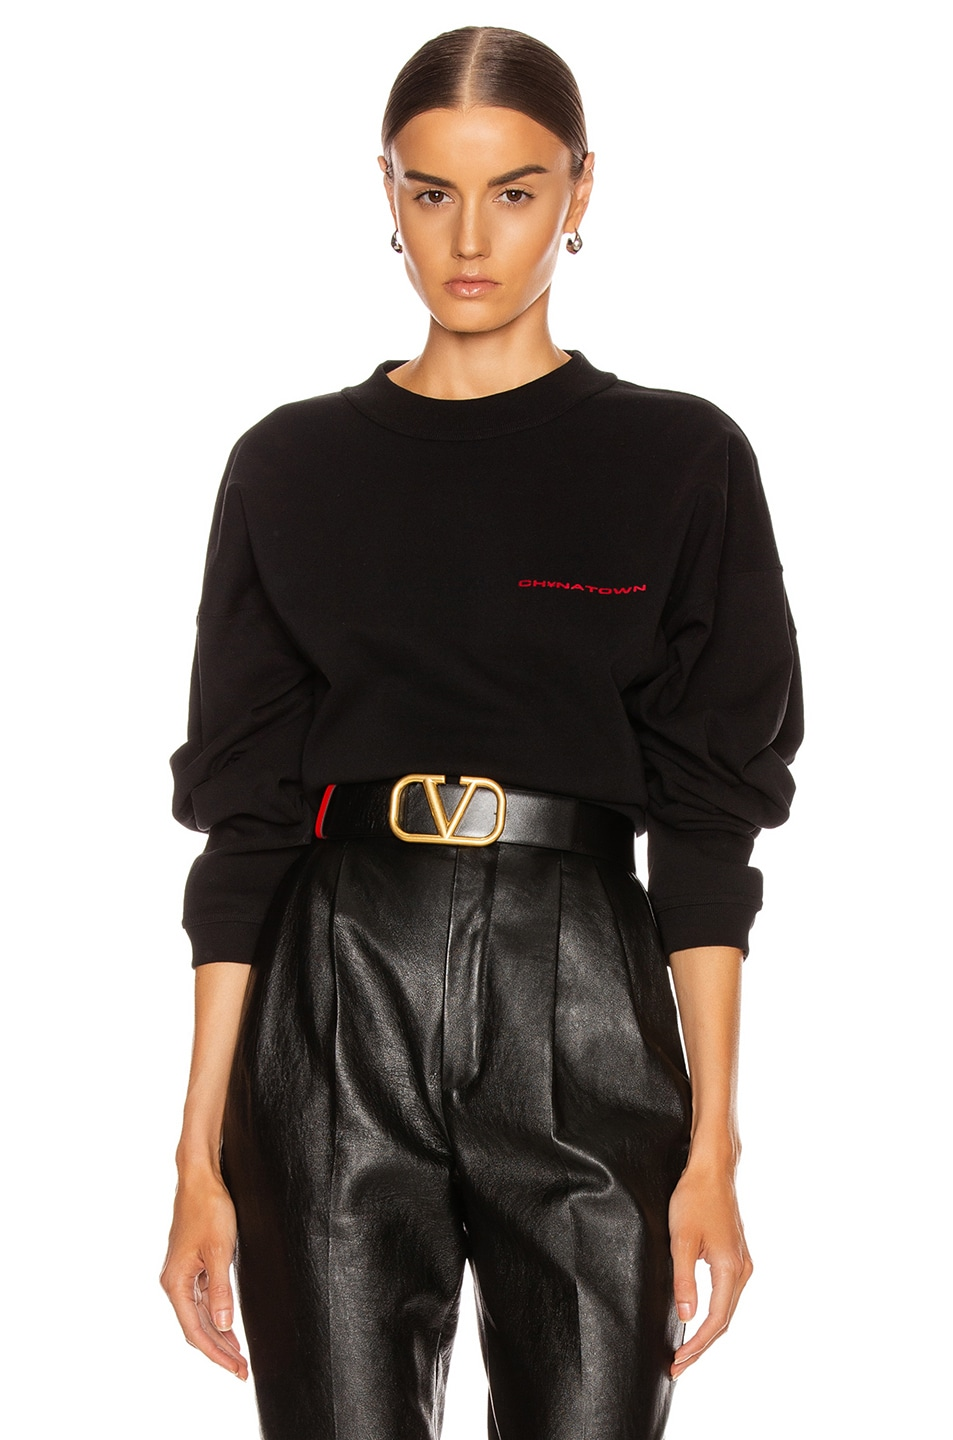 Image 1 of Alexander Wang Chynatown Chain Long Sleeve Top in Black